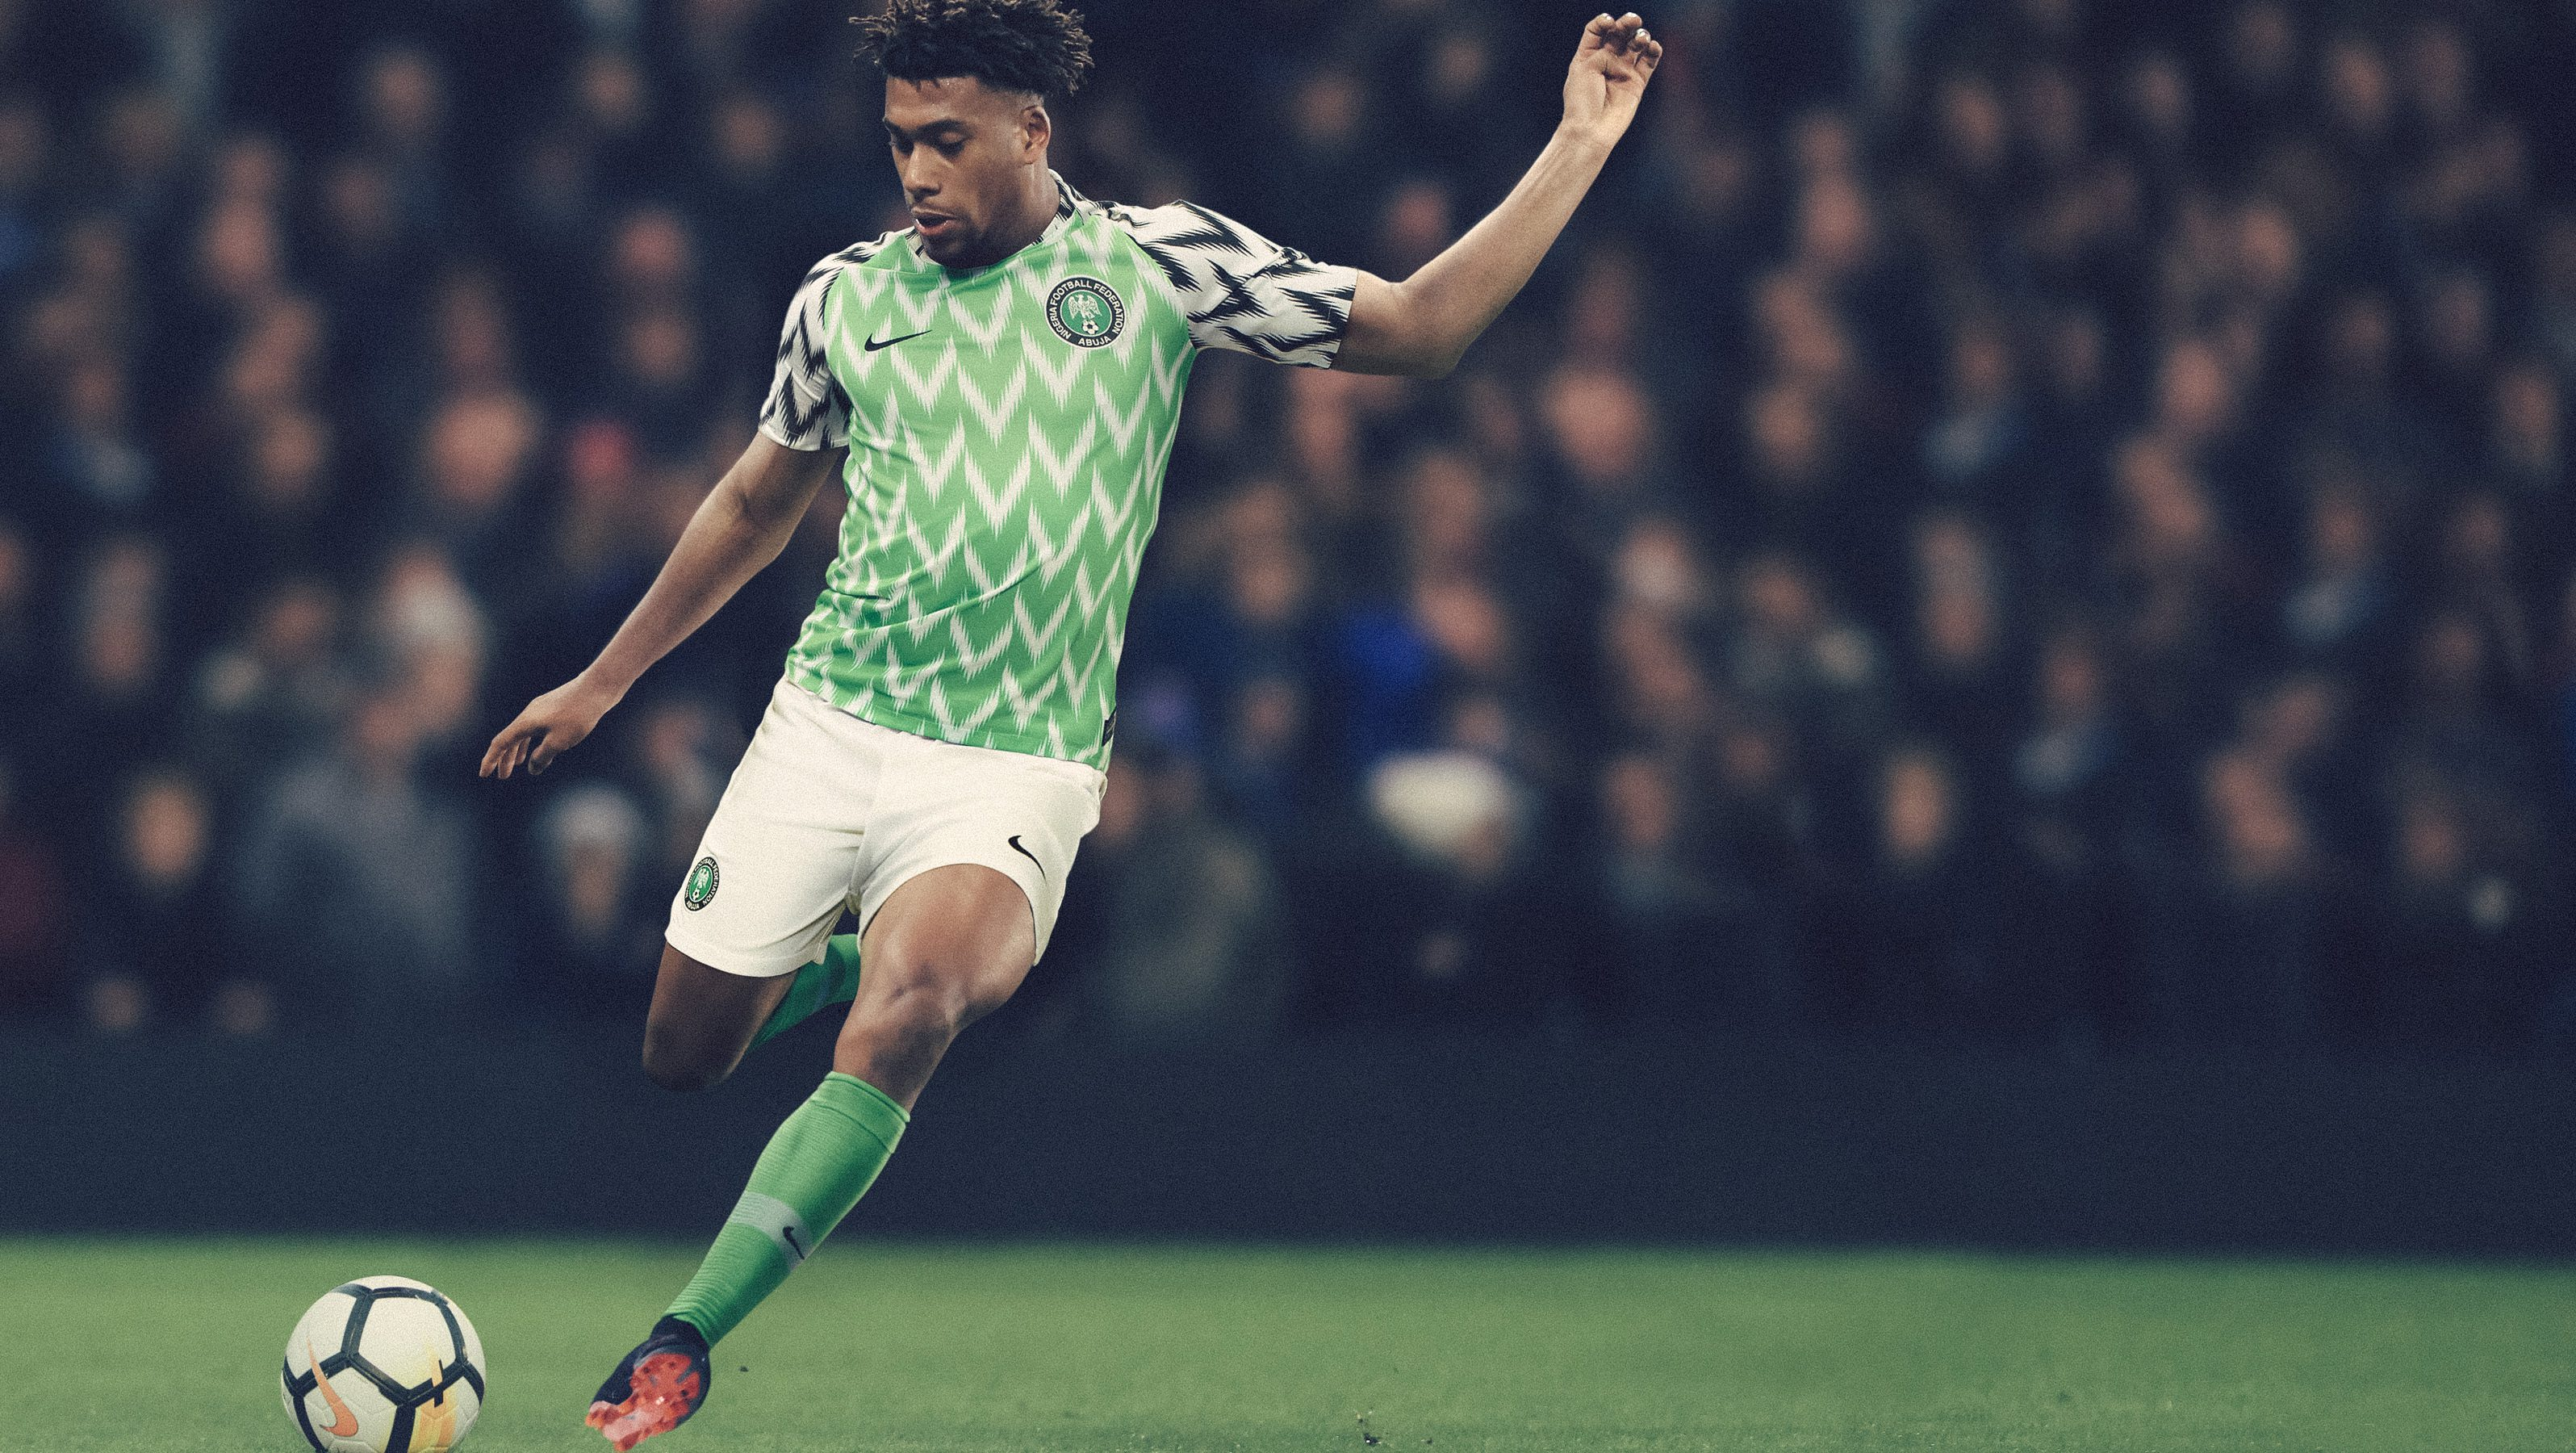 18ff9c6b203 Nigeria's snazzy World Cup kit has sold out—less than three hours after  release